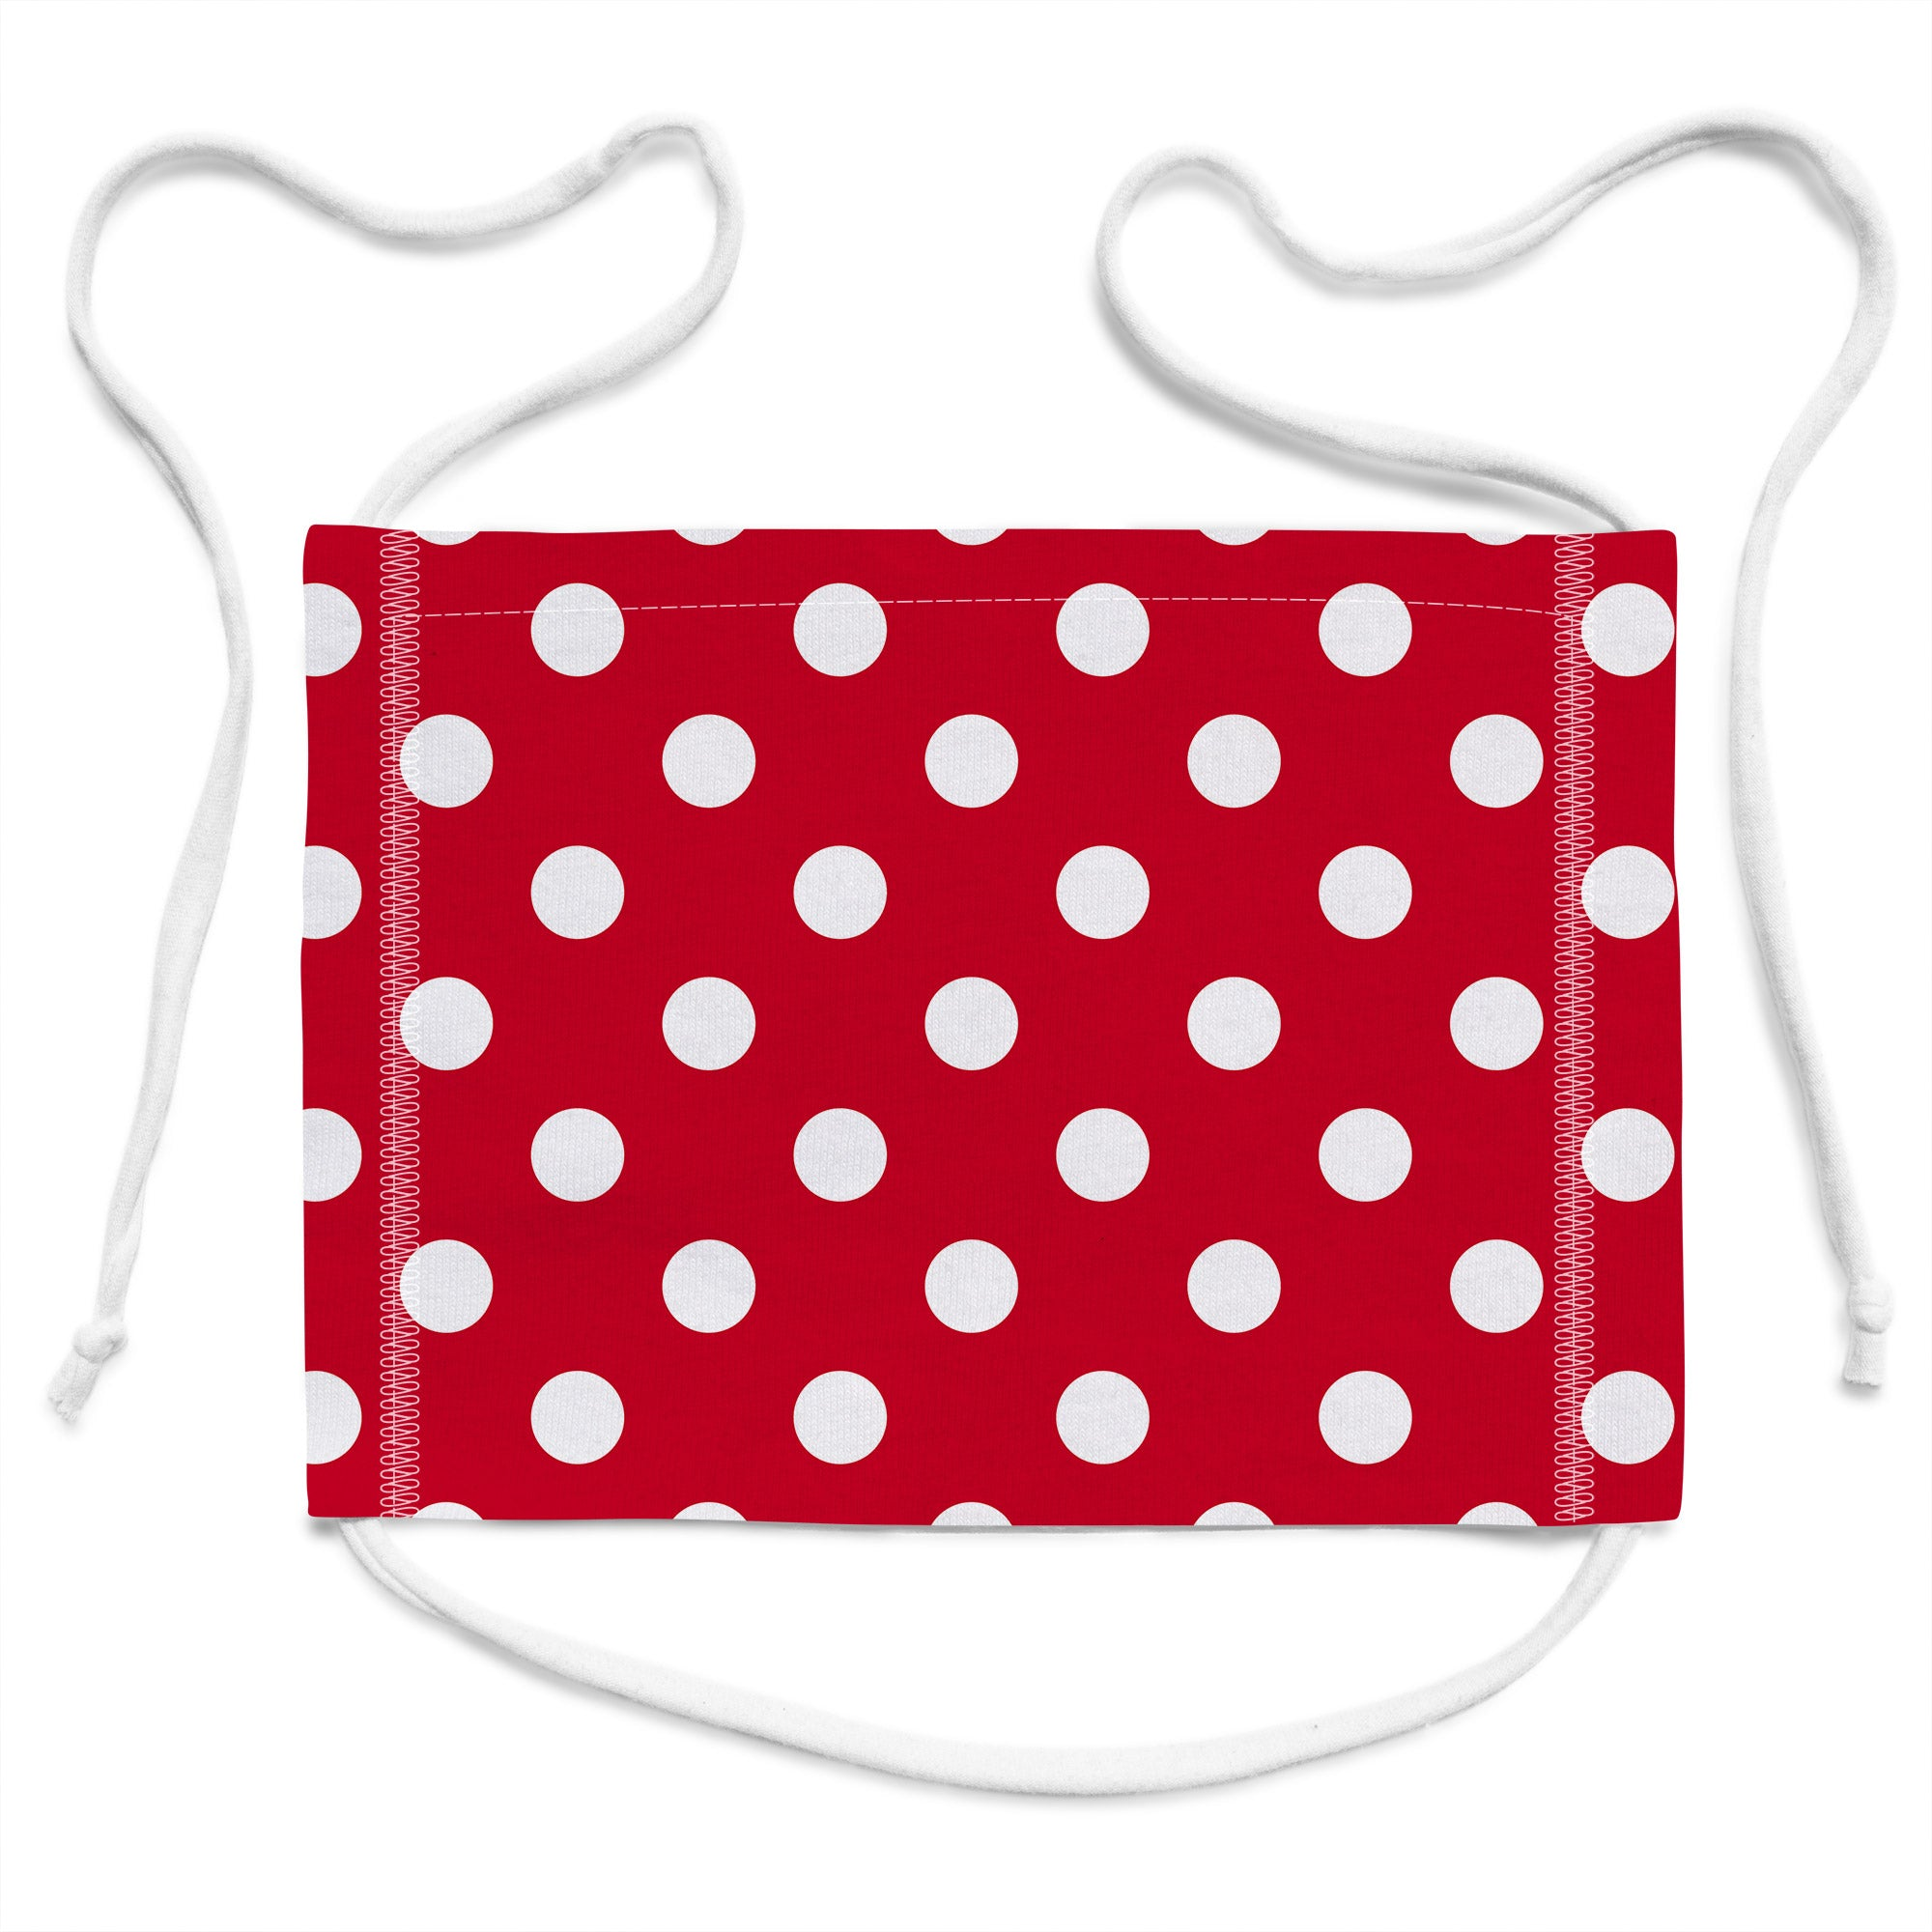 CHEAP Red Polka Face Mask 26660545845 – Clothing Accessories